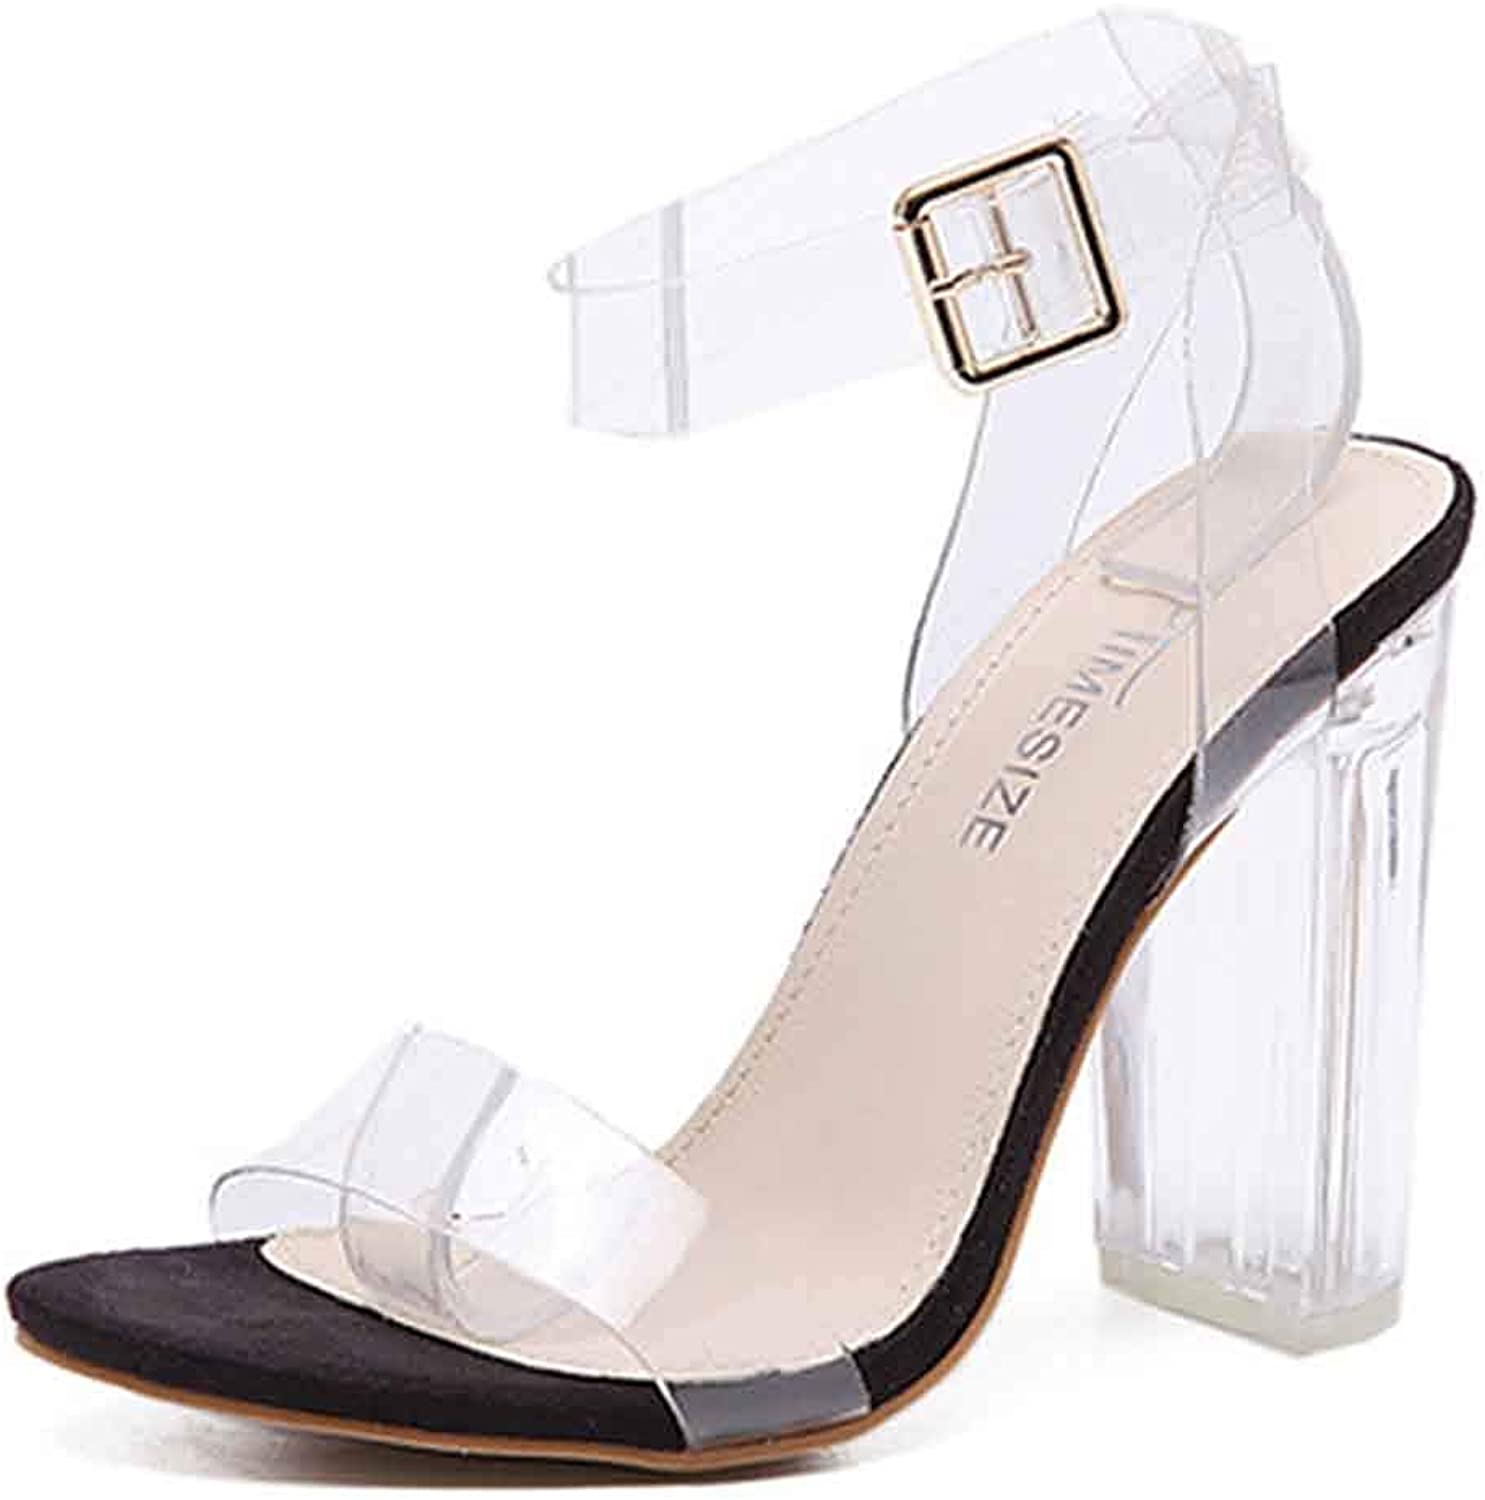 Women's Unique Transparent Buckled Open Toe Clear Chunky High Heel Ankle Strap Jelly Sandals